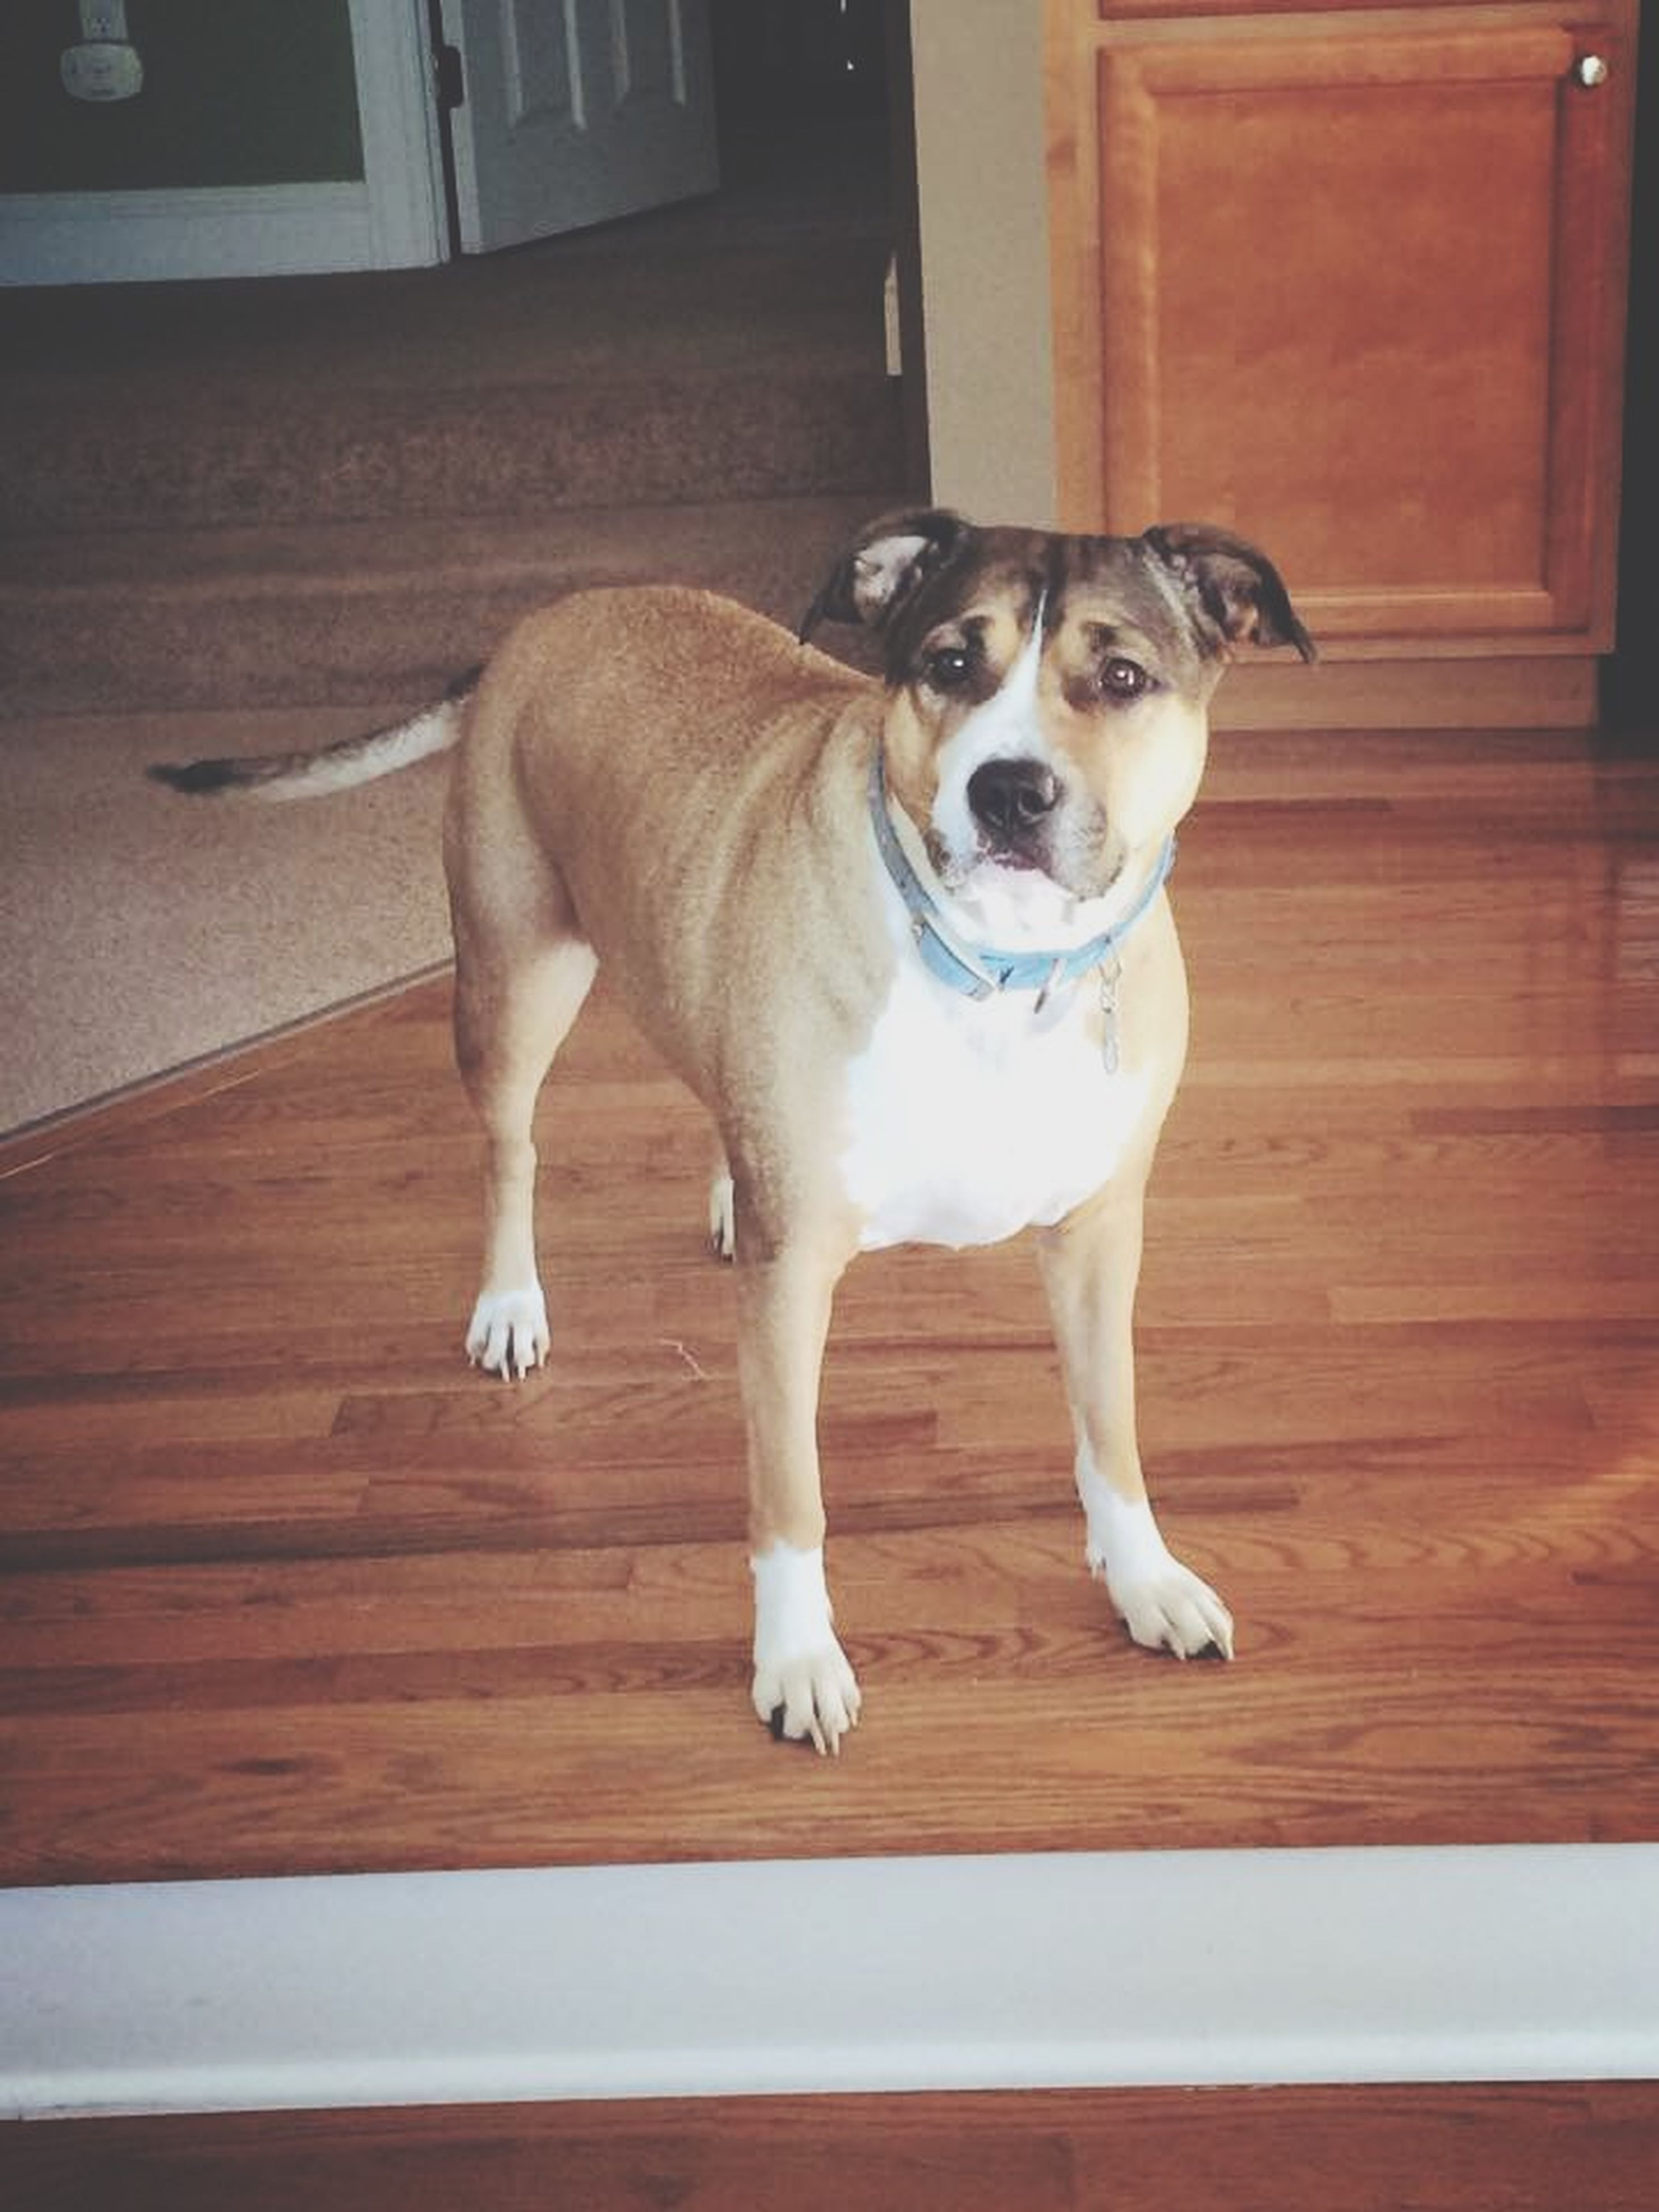 pets, dog, domestic animals, animal themes, one animal, mammal, portrait, looking at camera, indoors, full length, standing, pet collar, no people, sitting, front view, loyalty, flooring, zoology, vertebrate